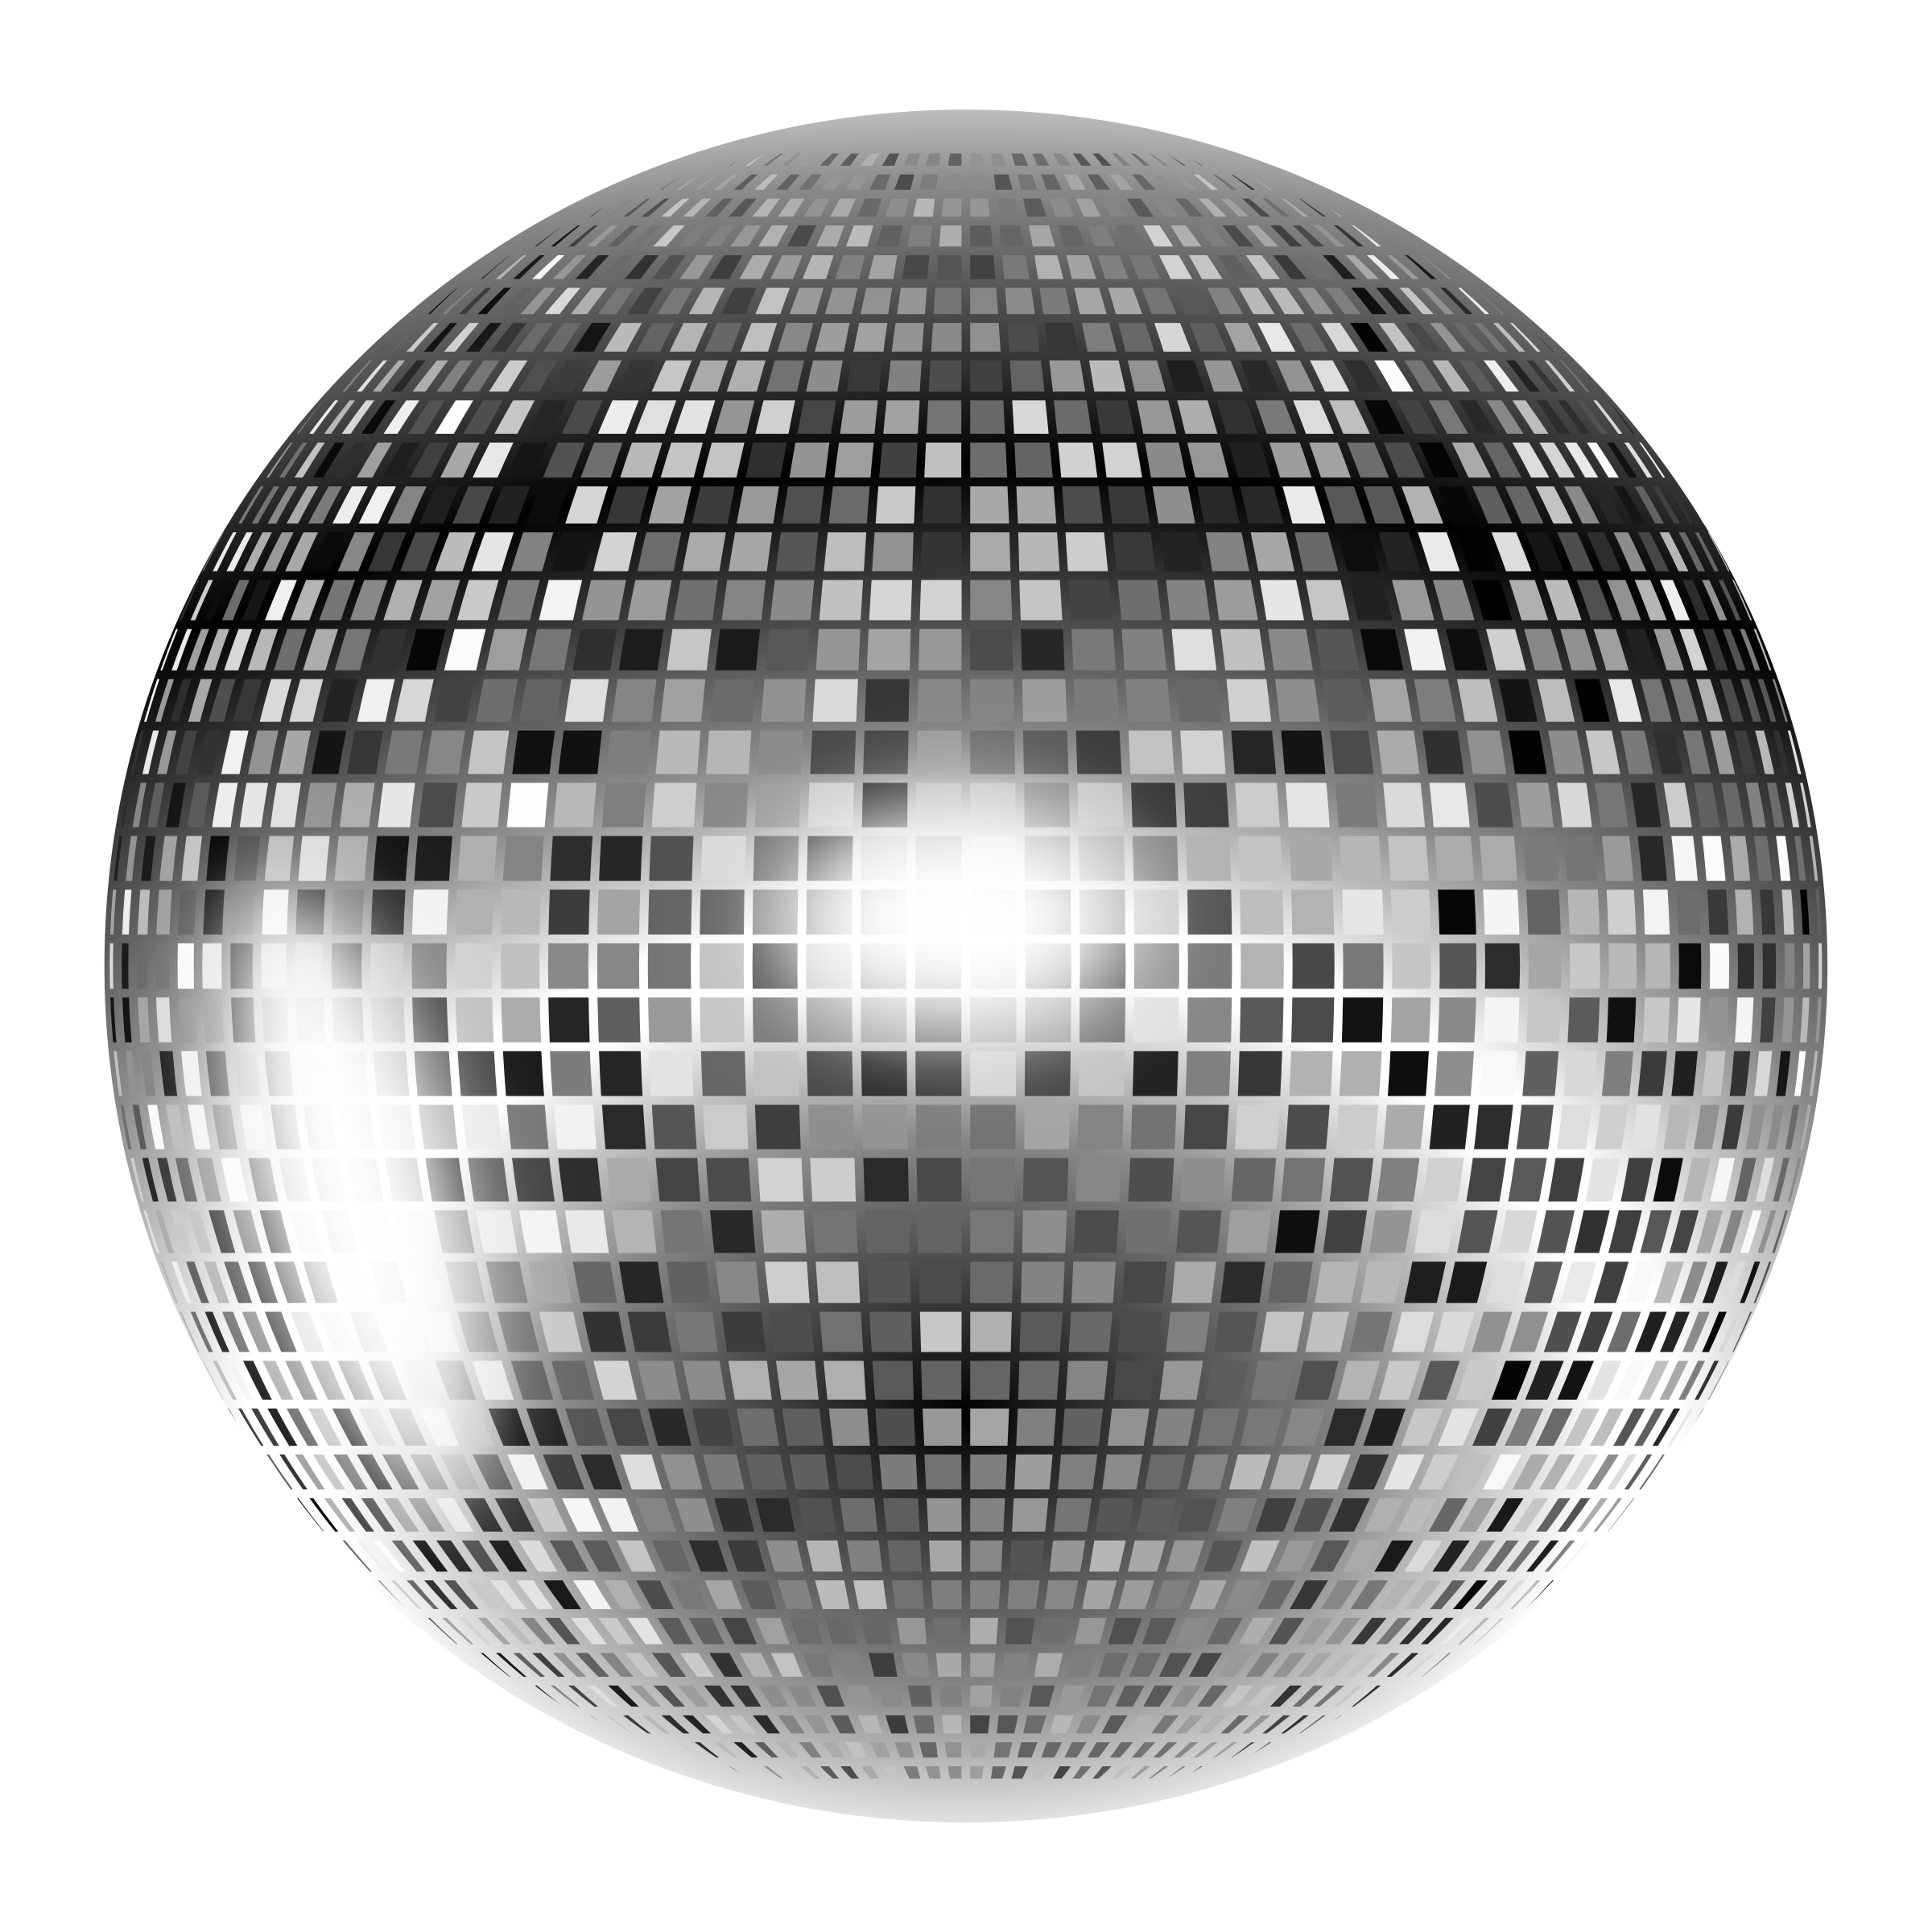 clipart disco ball. Black Bedroom Furniture Sets. Home Design Ideas